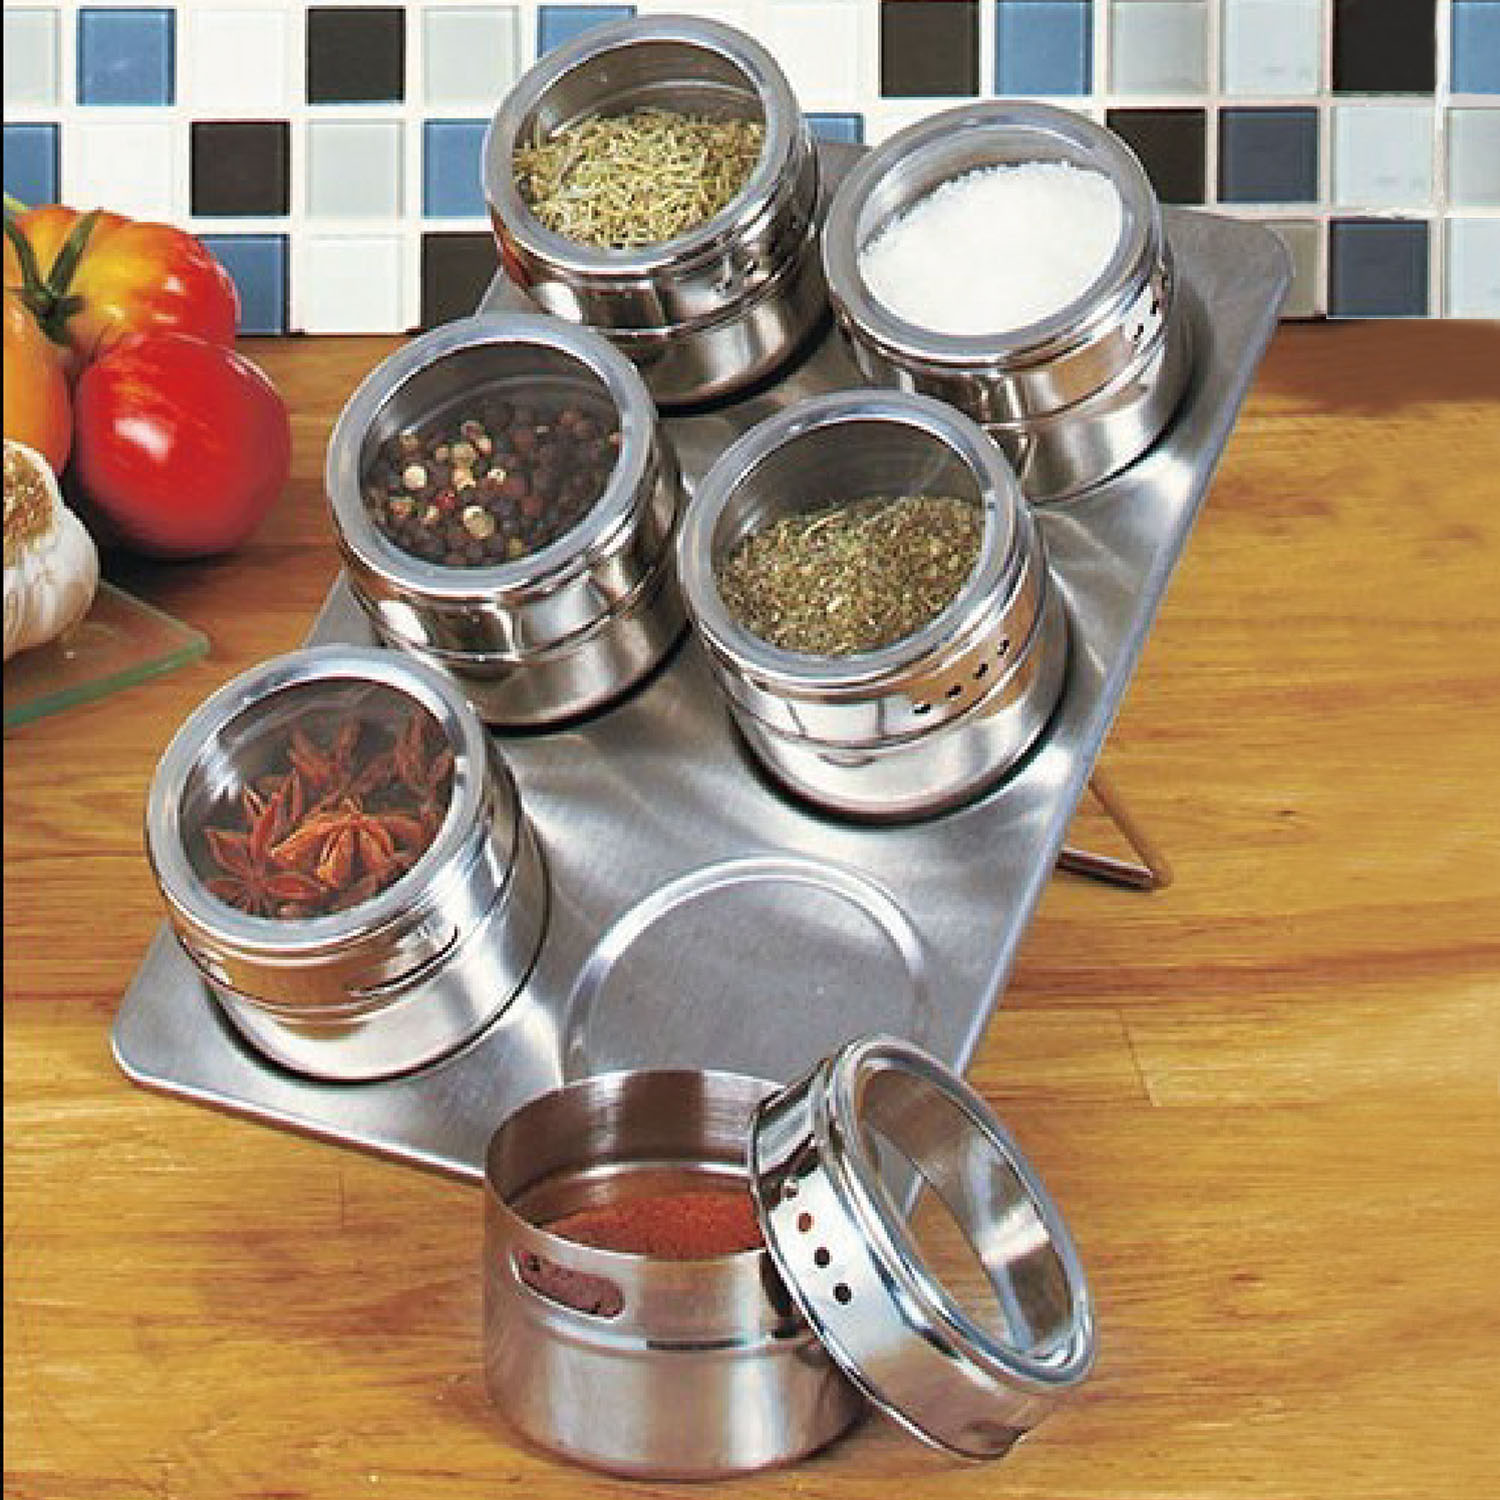 6 Piece Magnetic Spice Rack Space Saver w  See-Through Lids by GPCT